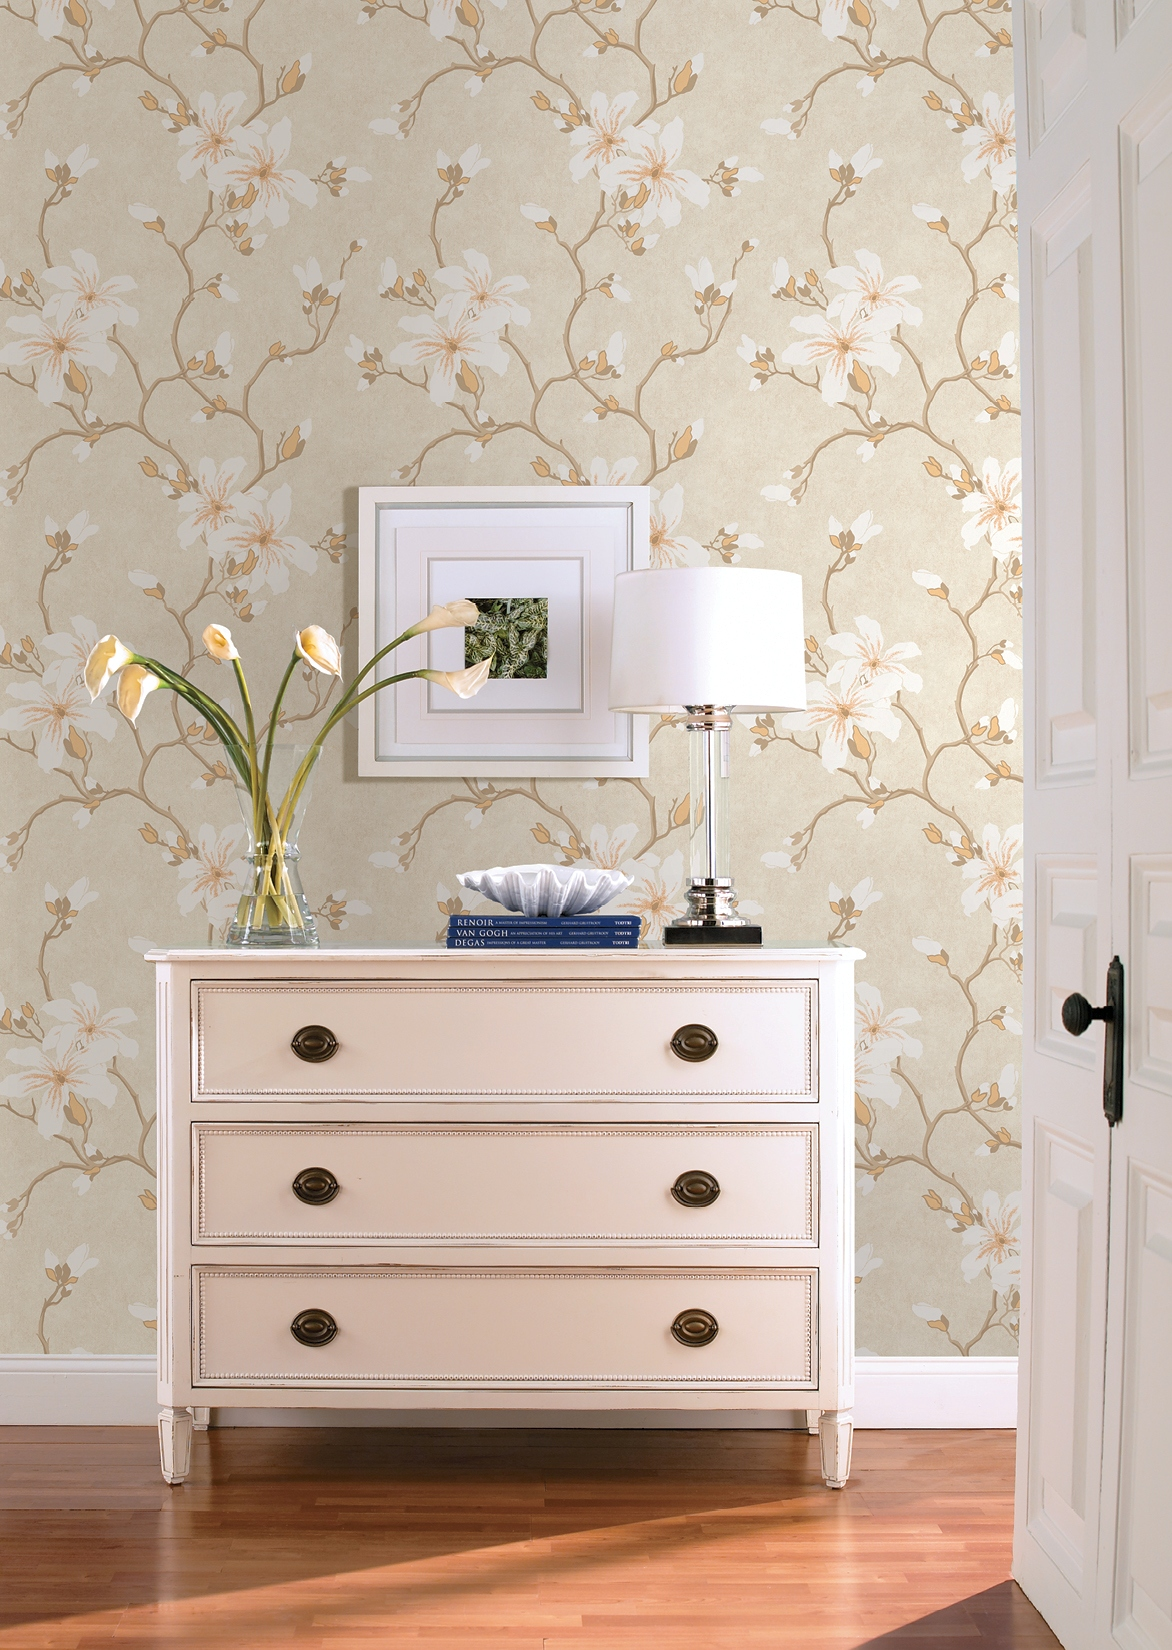 Color-Portfolio-wallcovering-collection-from-fabricut-ADAC-Atlanta-print-patterns-floral-wallpaper-wp4604930